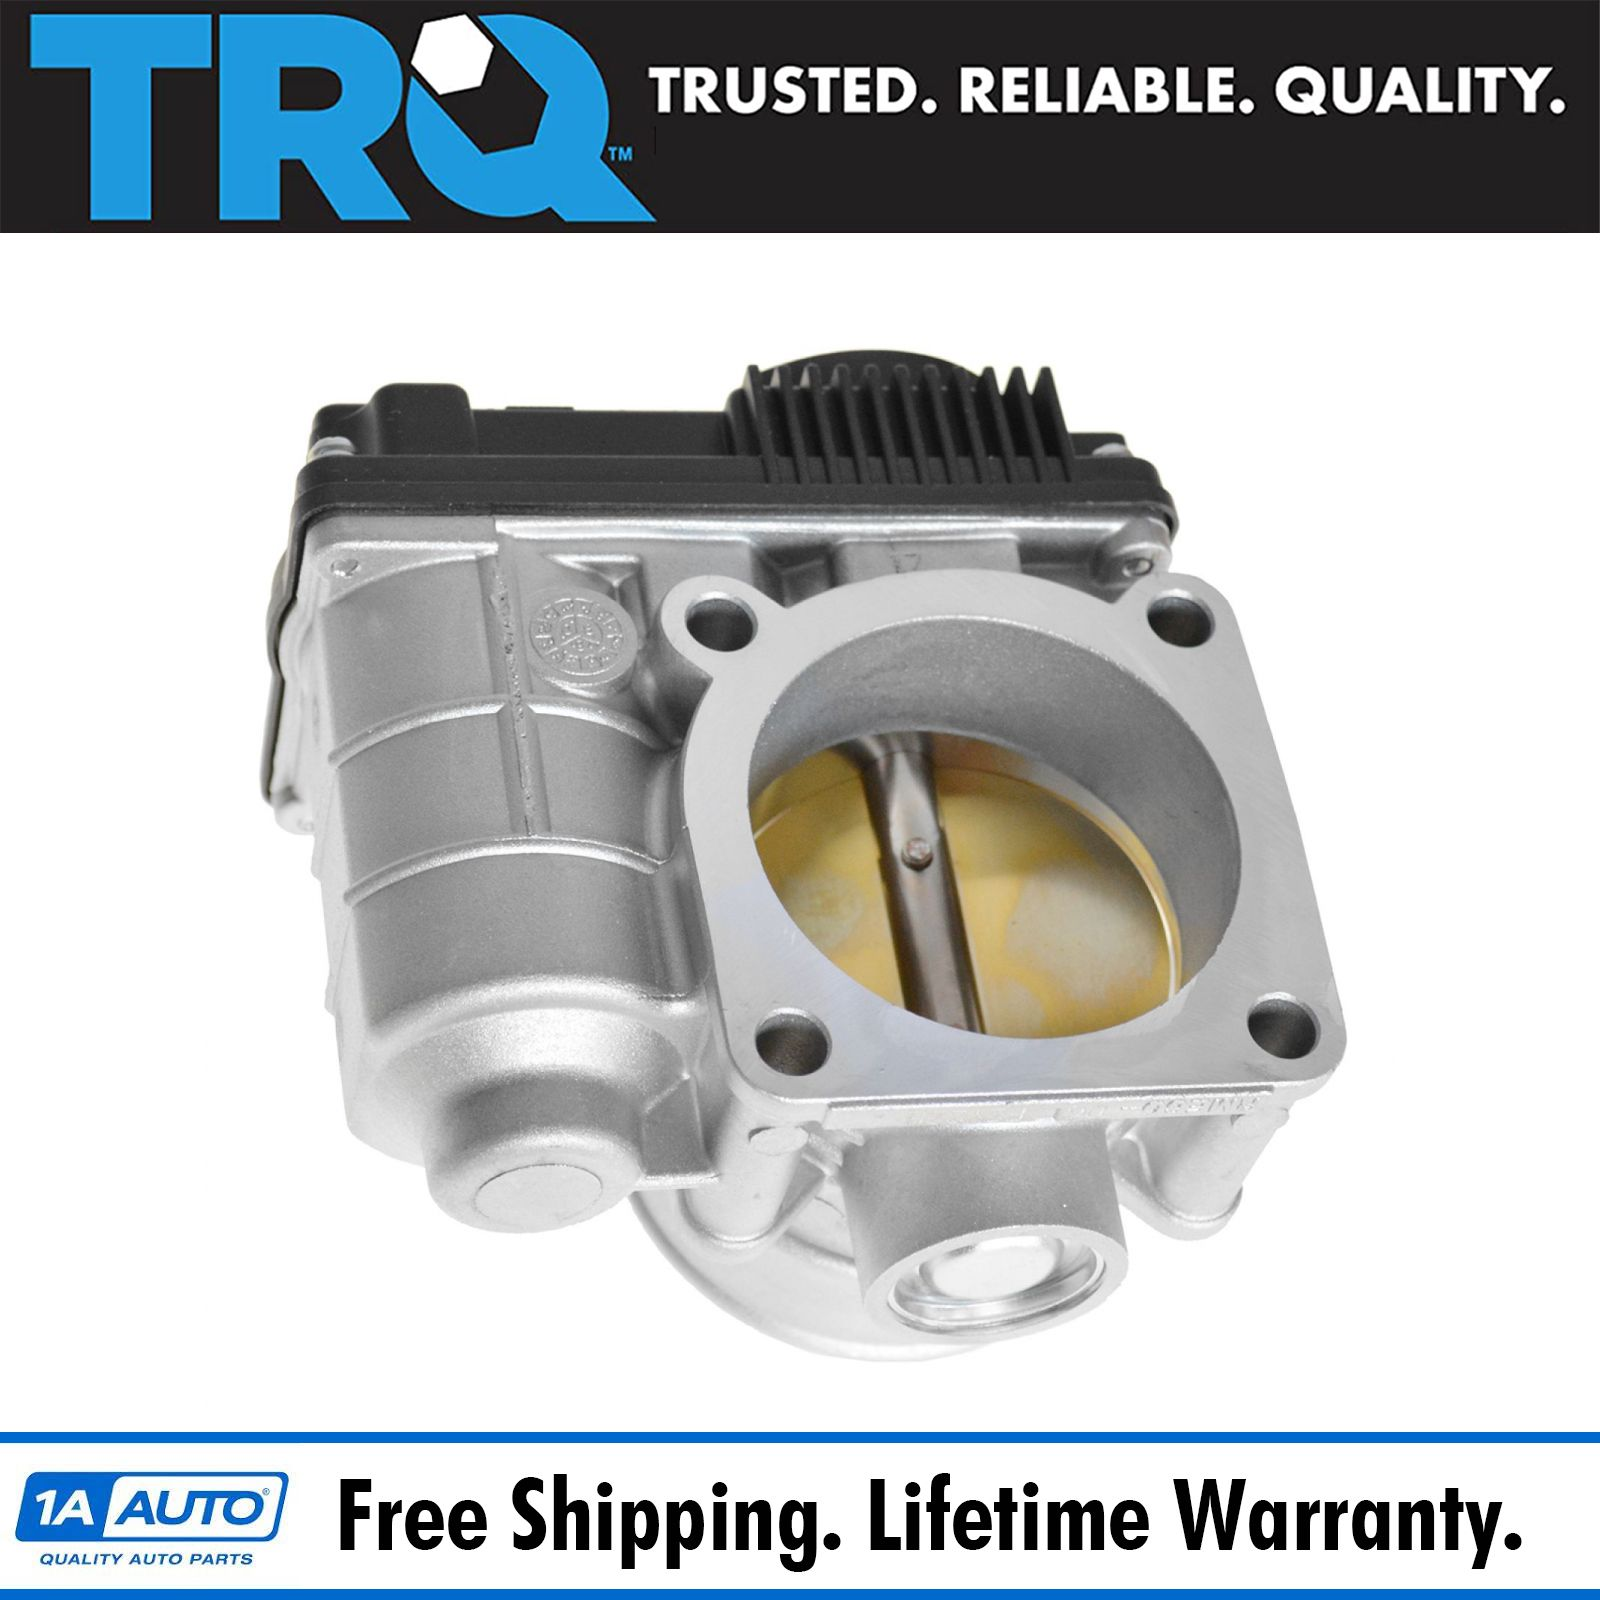 Newest Electronic Throttle Body Assembly for Nissan Altima Sentra X-Trail 2.5L